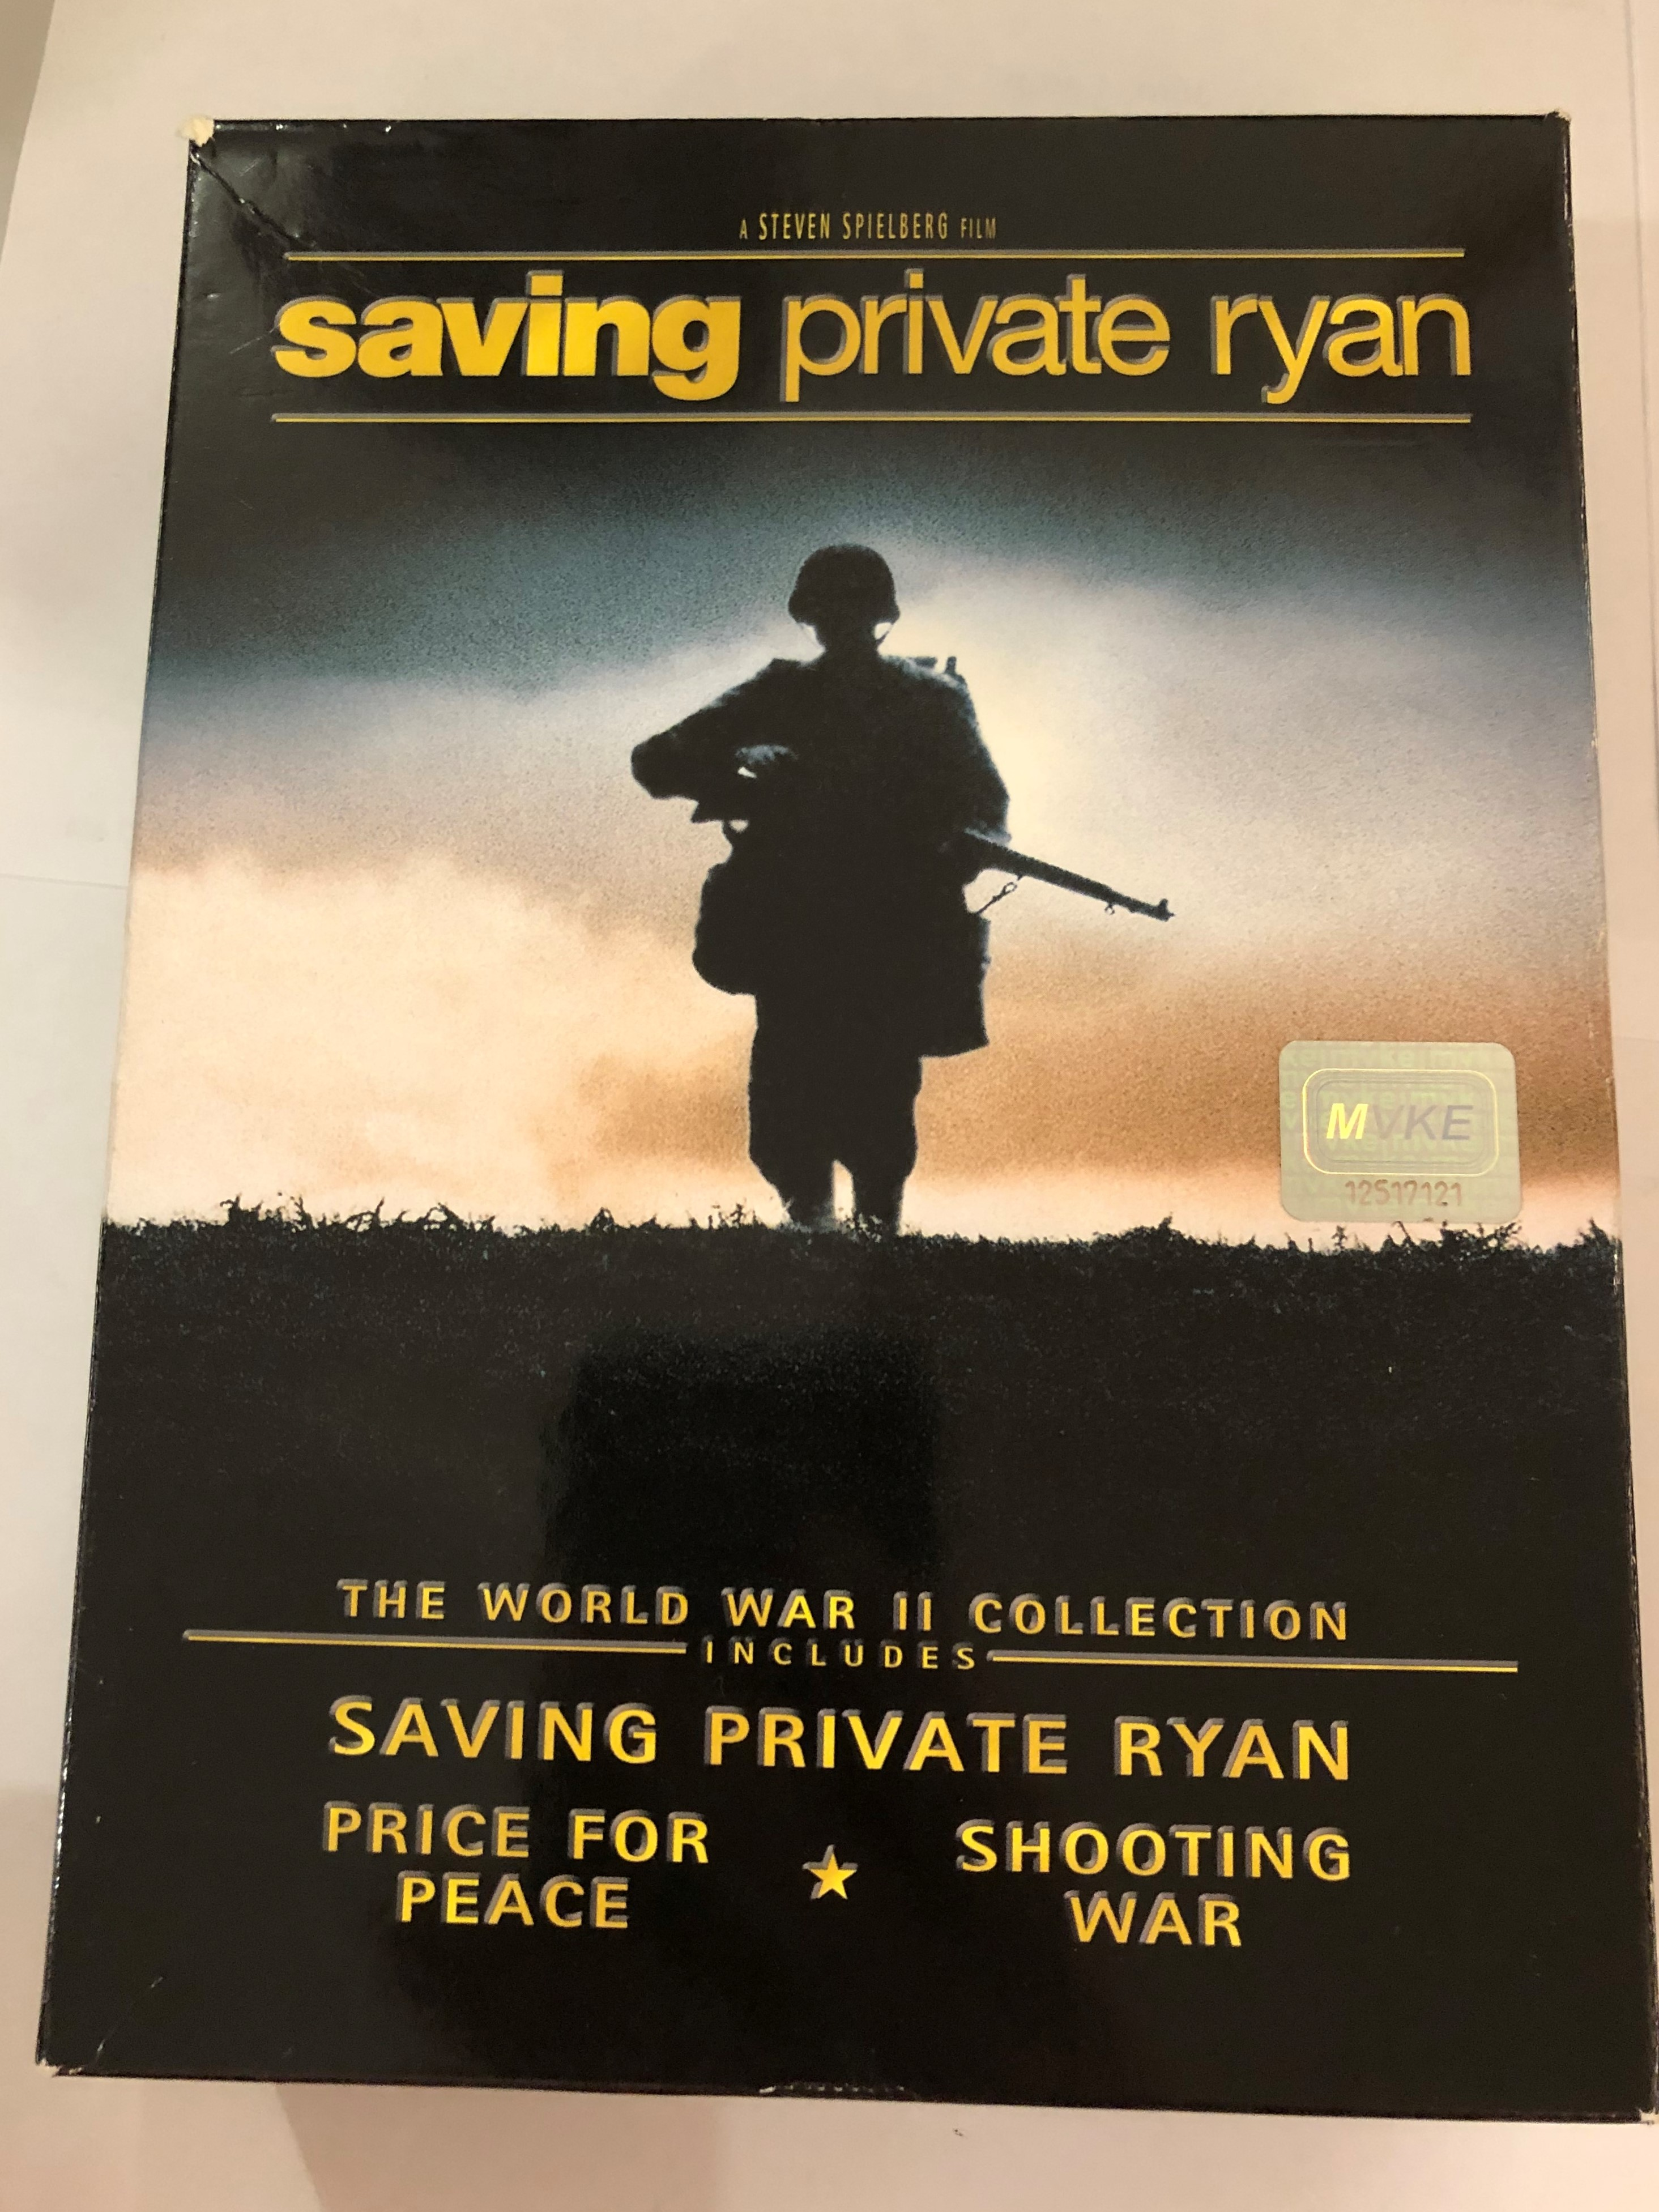 saving-private-ryan-dvd-set-1998-special-edition-directed-by-steven-spielberg-1-.jpg